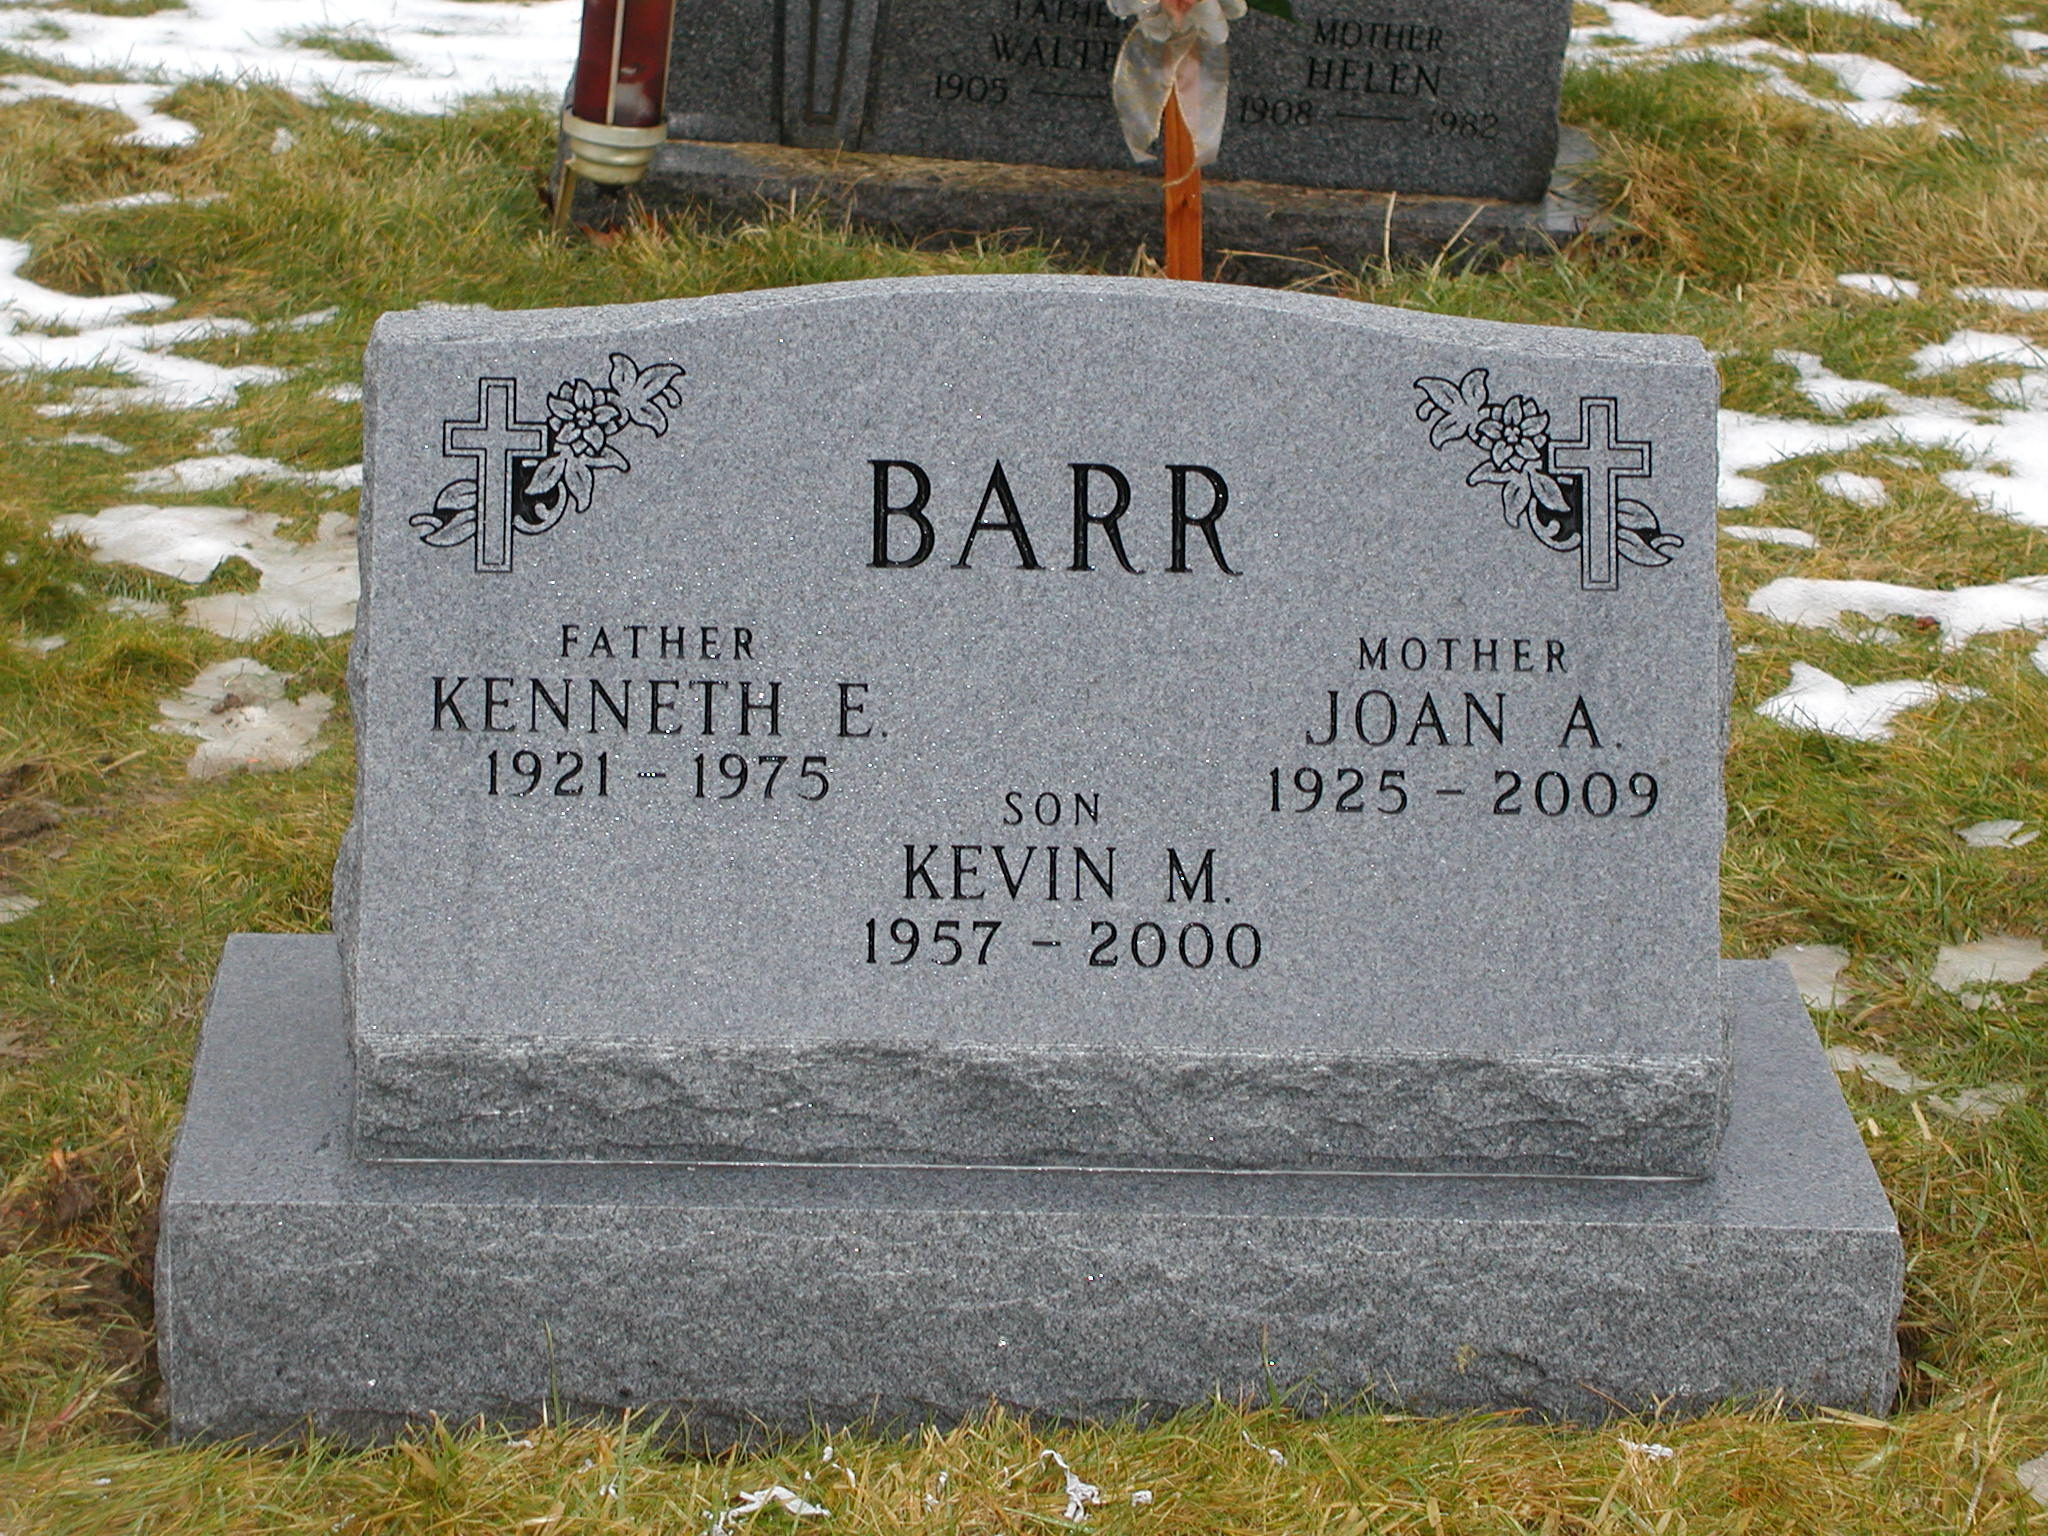 Barr-Kenneth